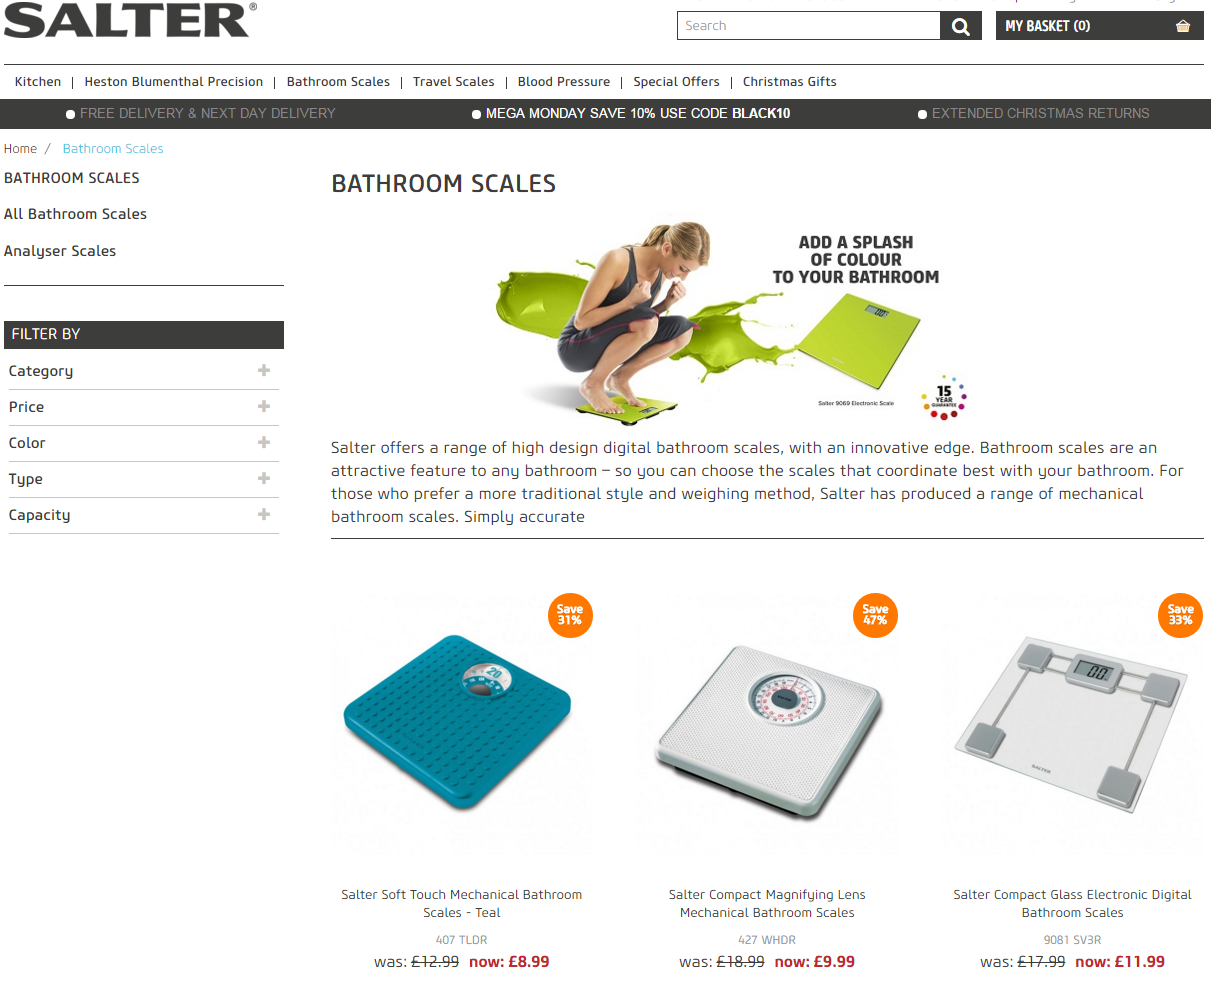 Salter launches new e-commerce website to increase sales of leading